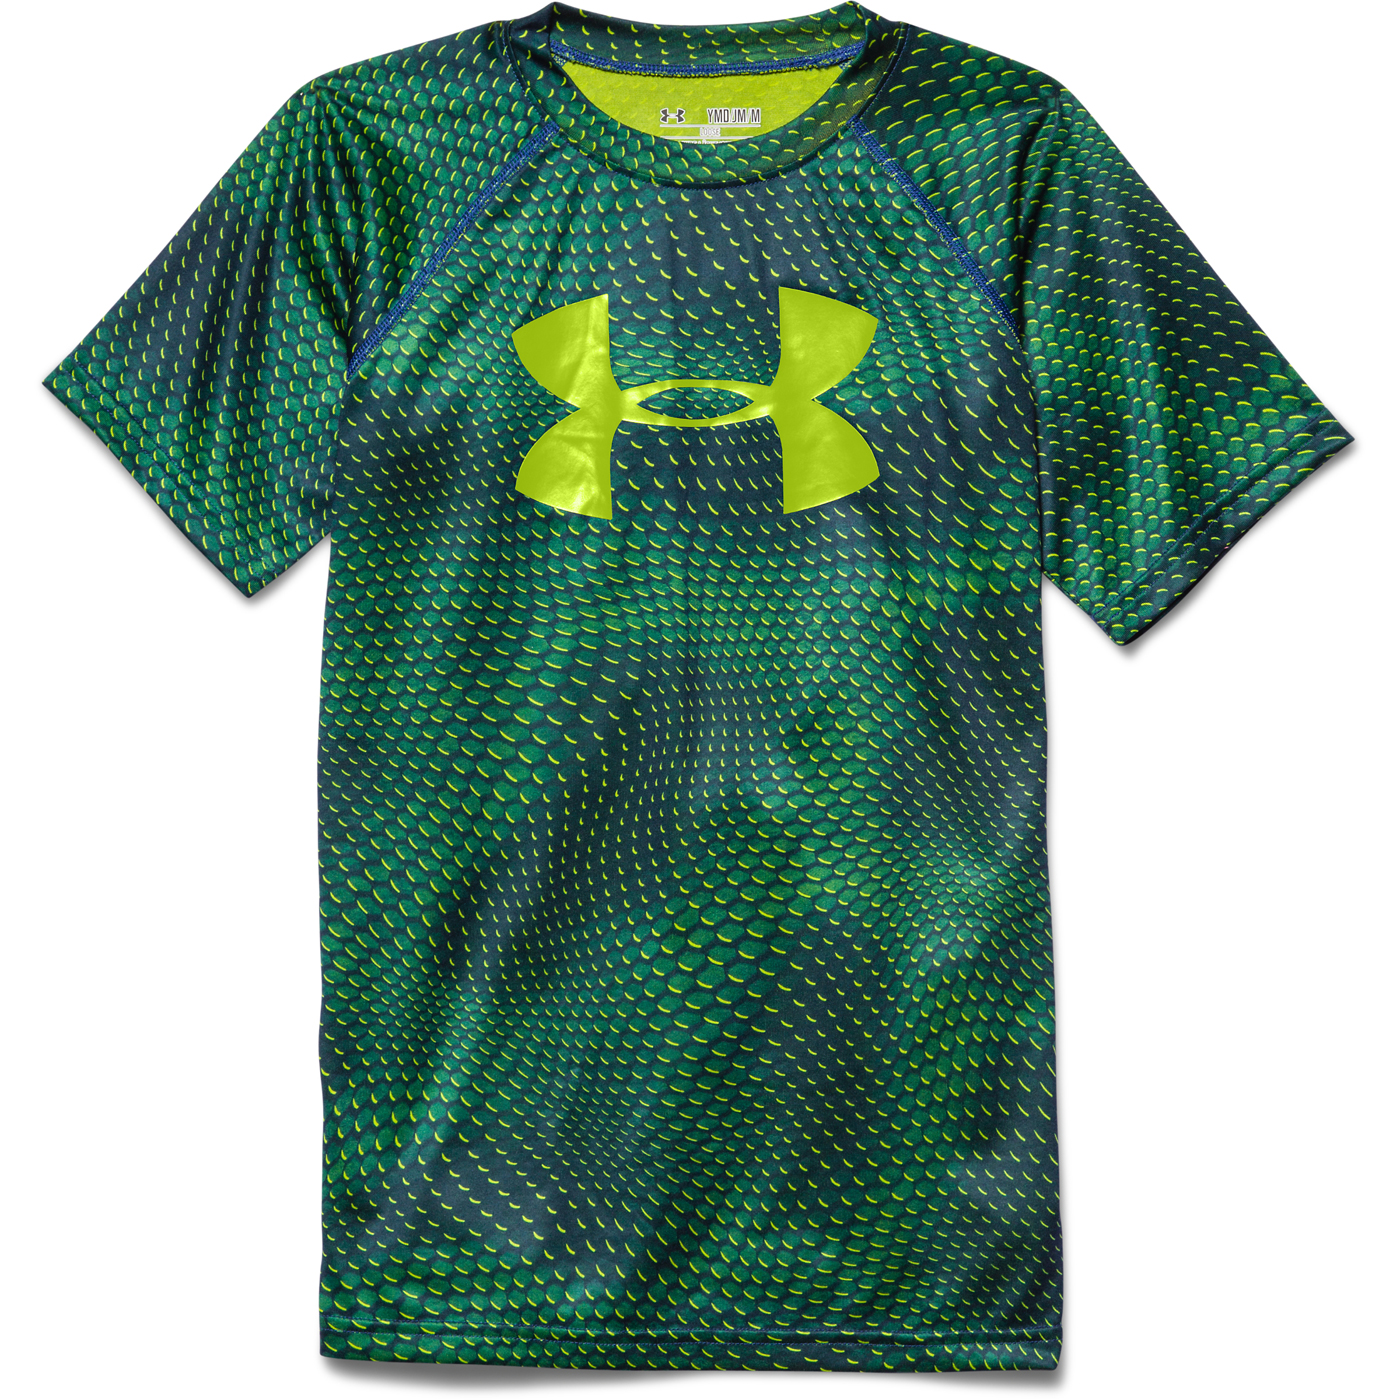 Cheap under armour kids clothes nike basketball shoes for Under armour printed t shirts